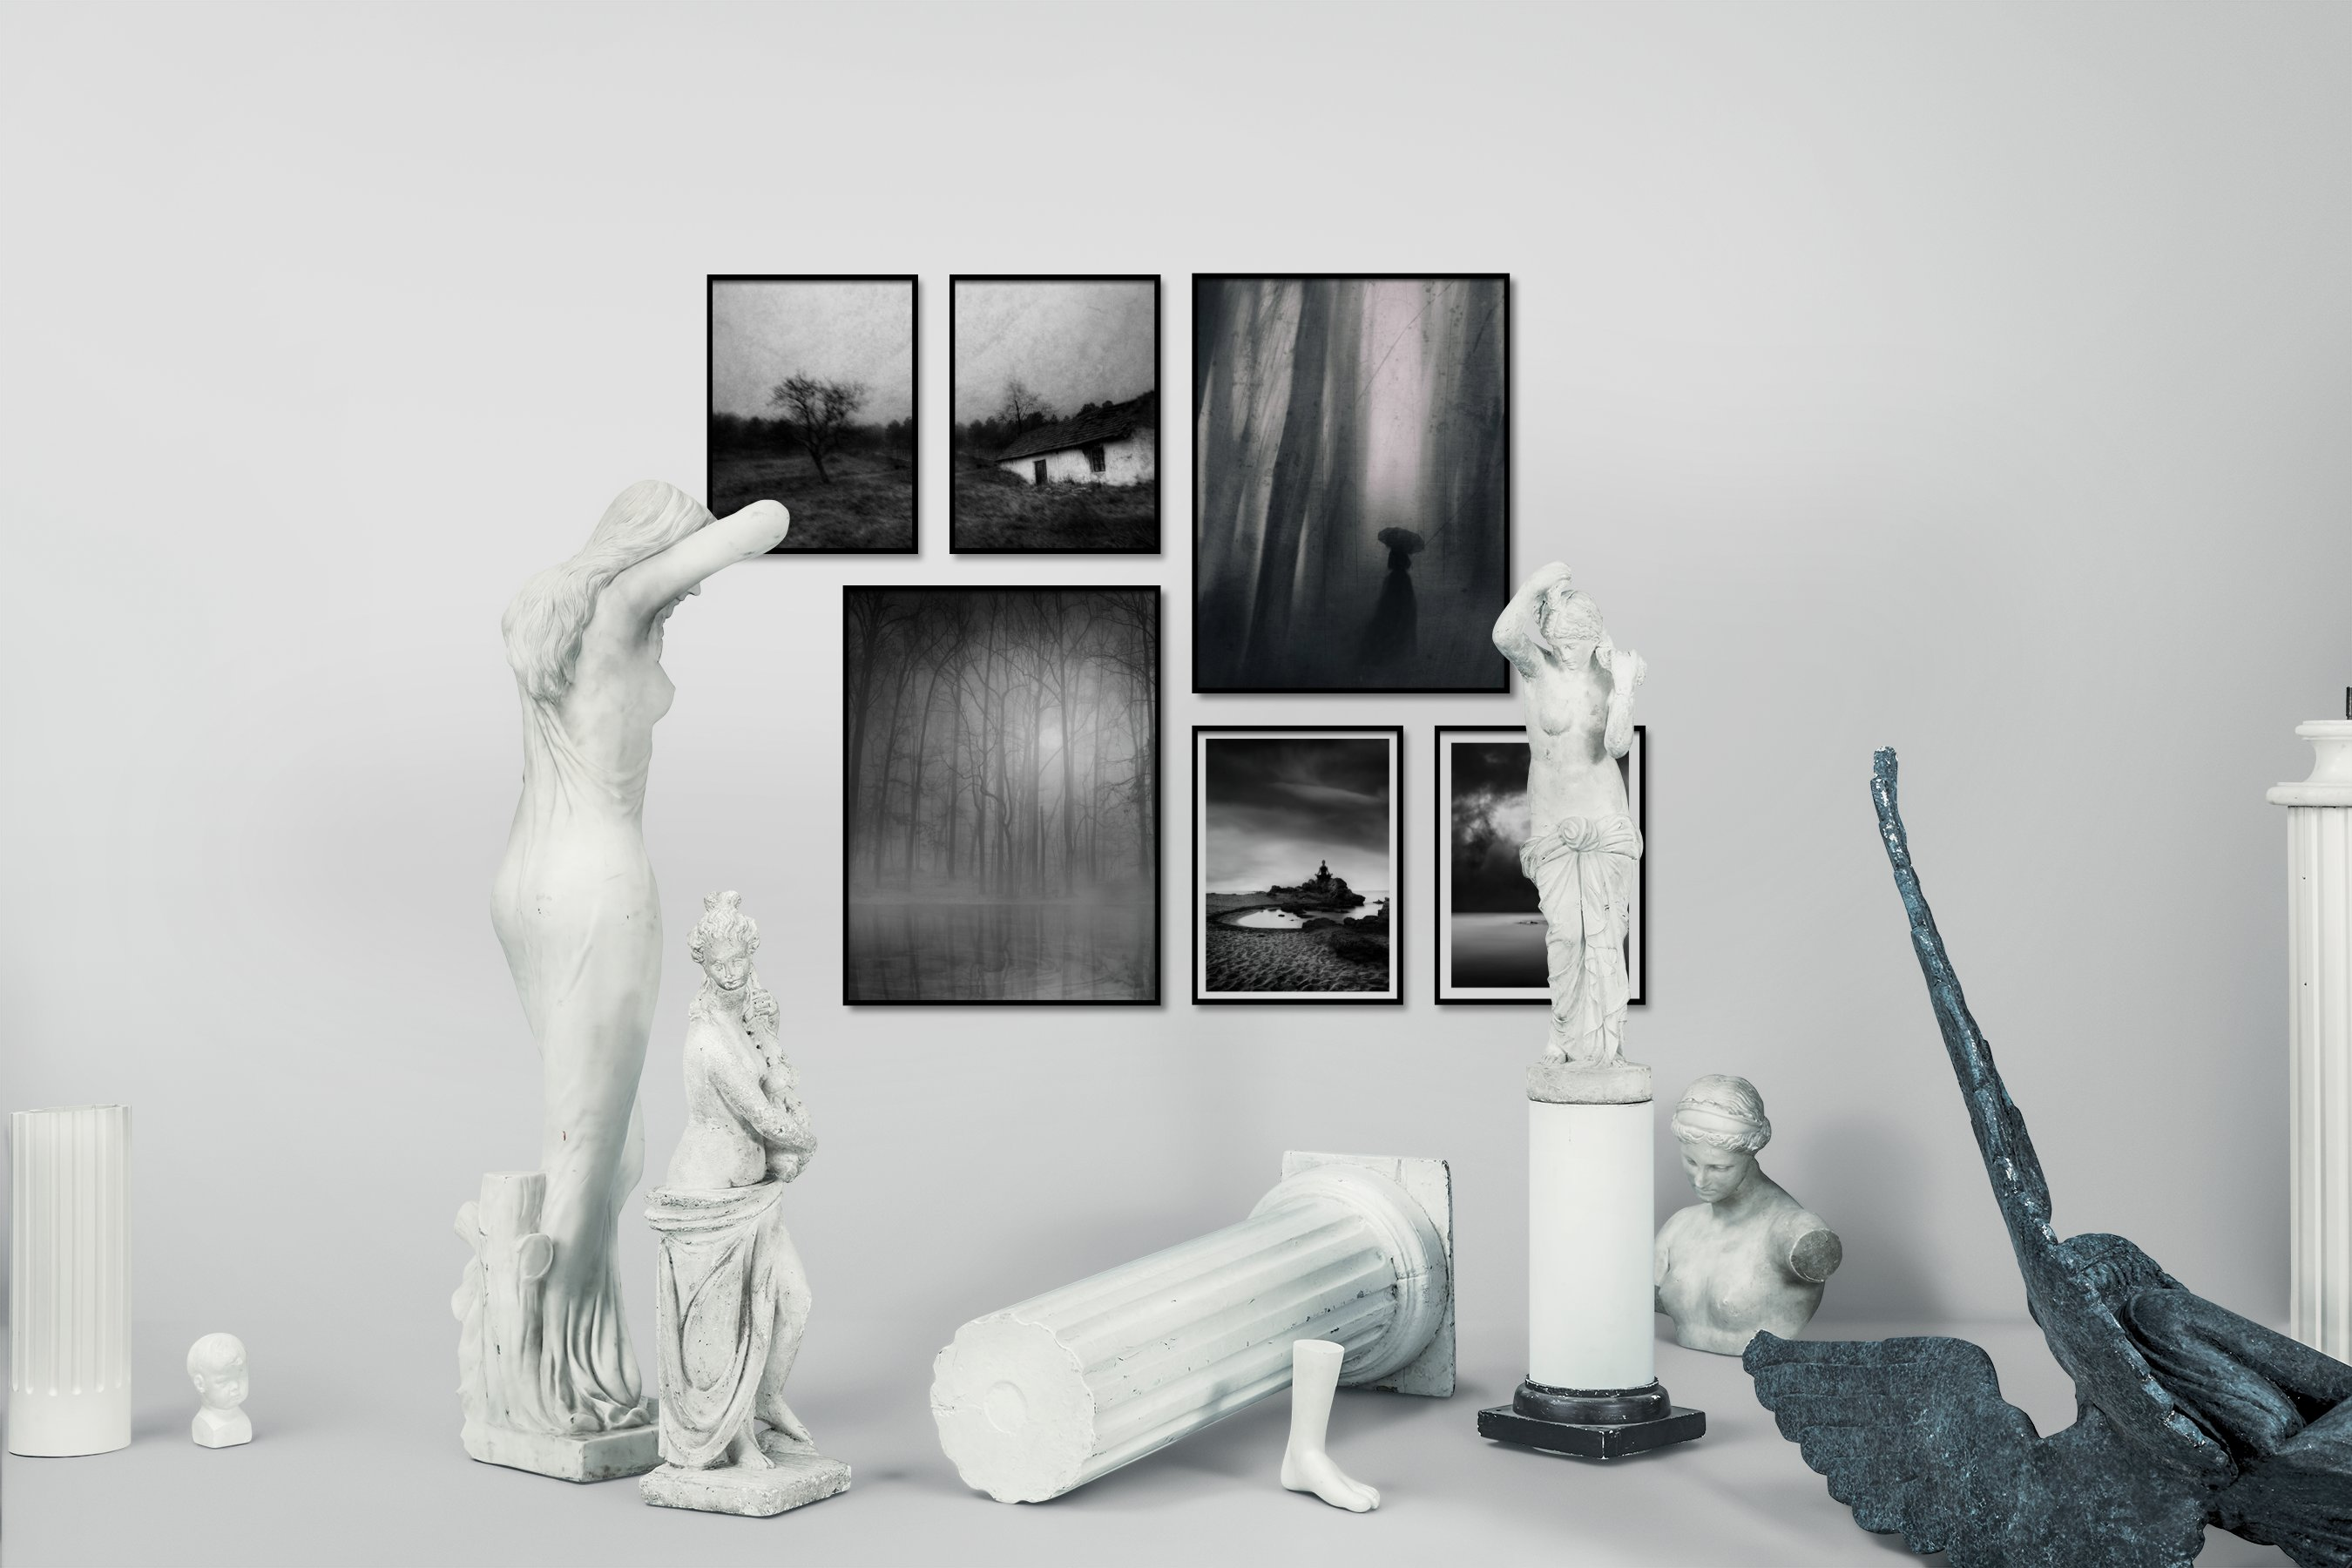 Gallery wall idea with six framed pictures arranged on a wall depicting Black & White, Country Life, Nature, and Vintage